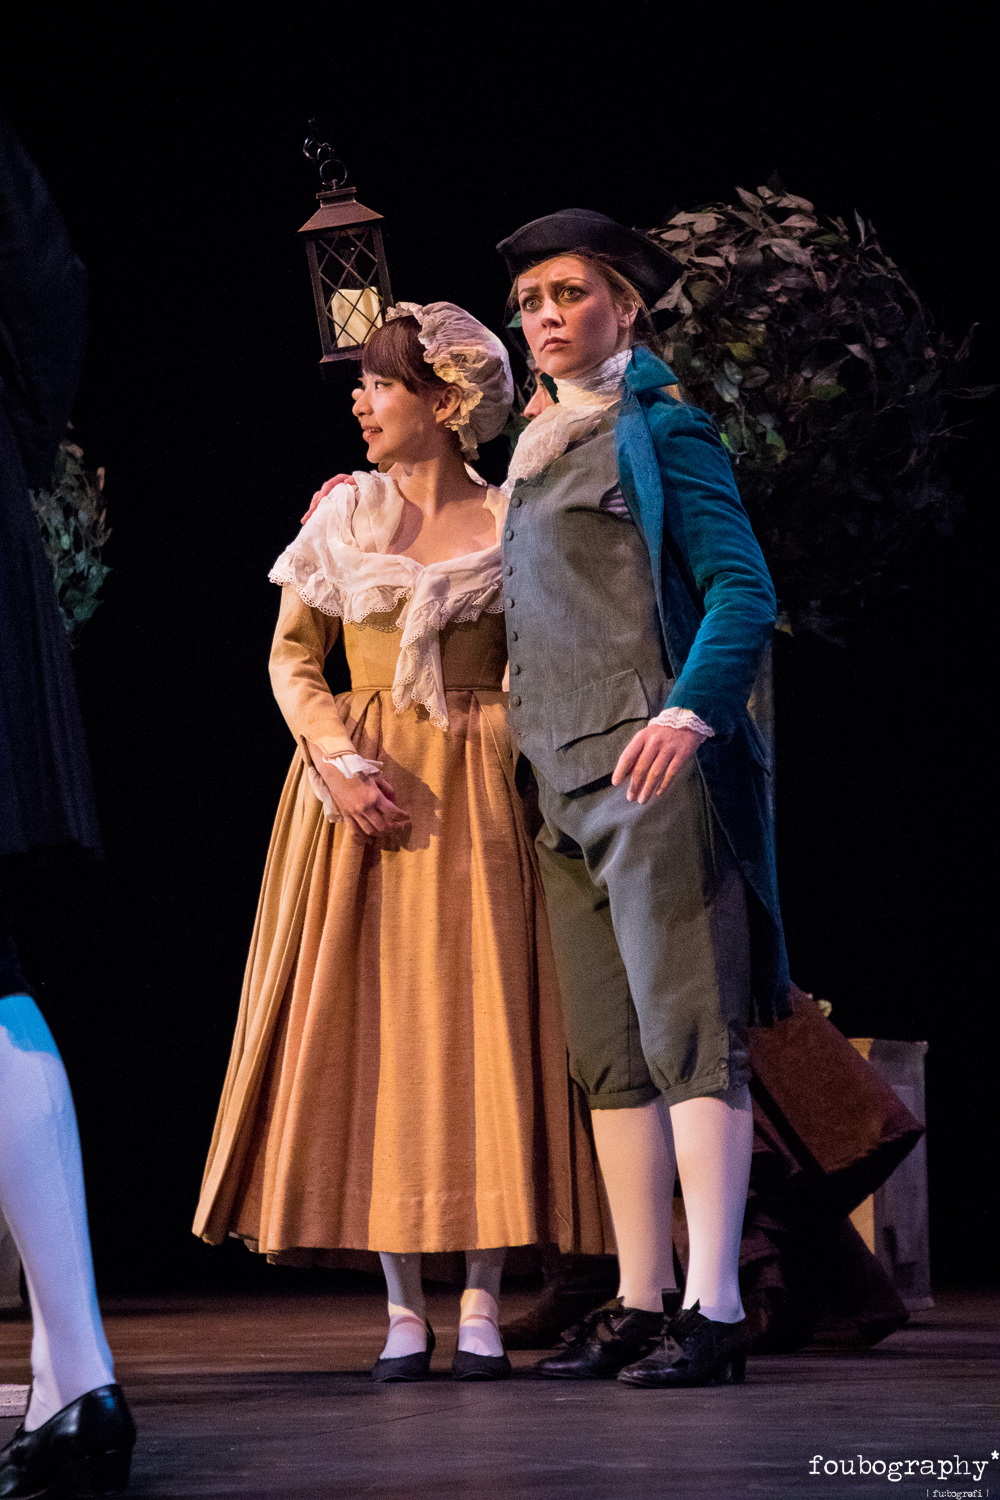 Naomi Rogers in  Le Nozze di Figaro  (Mozart)  @Royal Northern College of Music - Opera Photography - 2018_